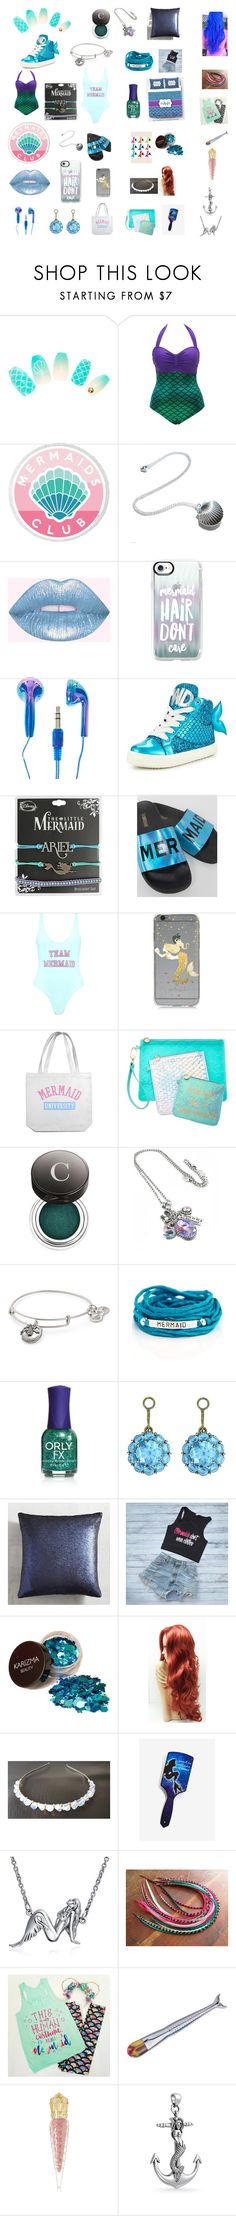 """""""MERMAID POWER!!!!!!!!!"""" by brianna-tito ❤ liked on Polyvore featuring Casetify, Miss KG, Disney, The White Brand, Boohoo, Samsung, Celebrate Shop, Chantecaille, Alex and Ani and Blooming Lotus Jewelry"""